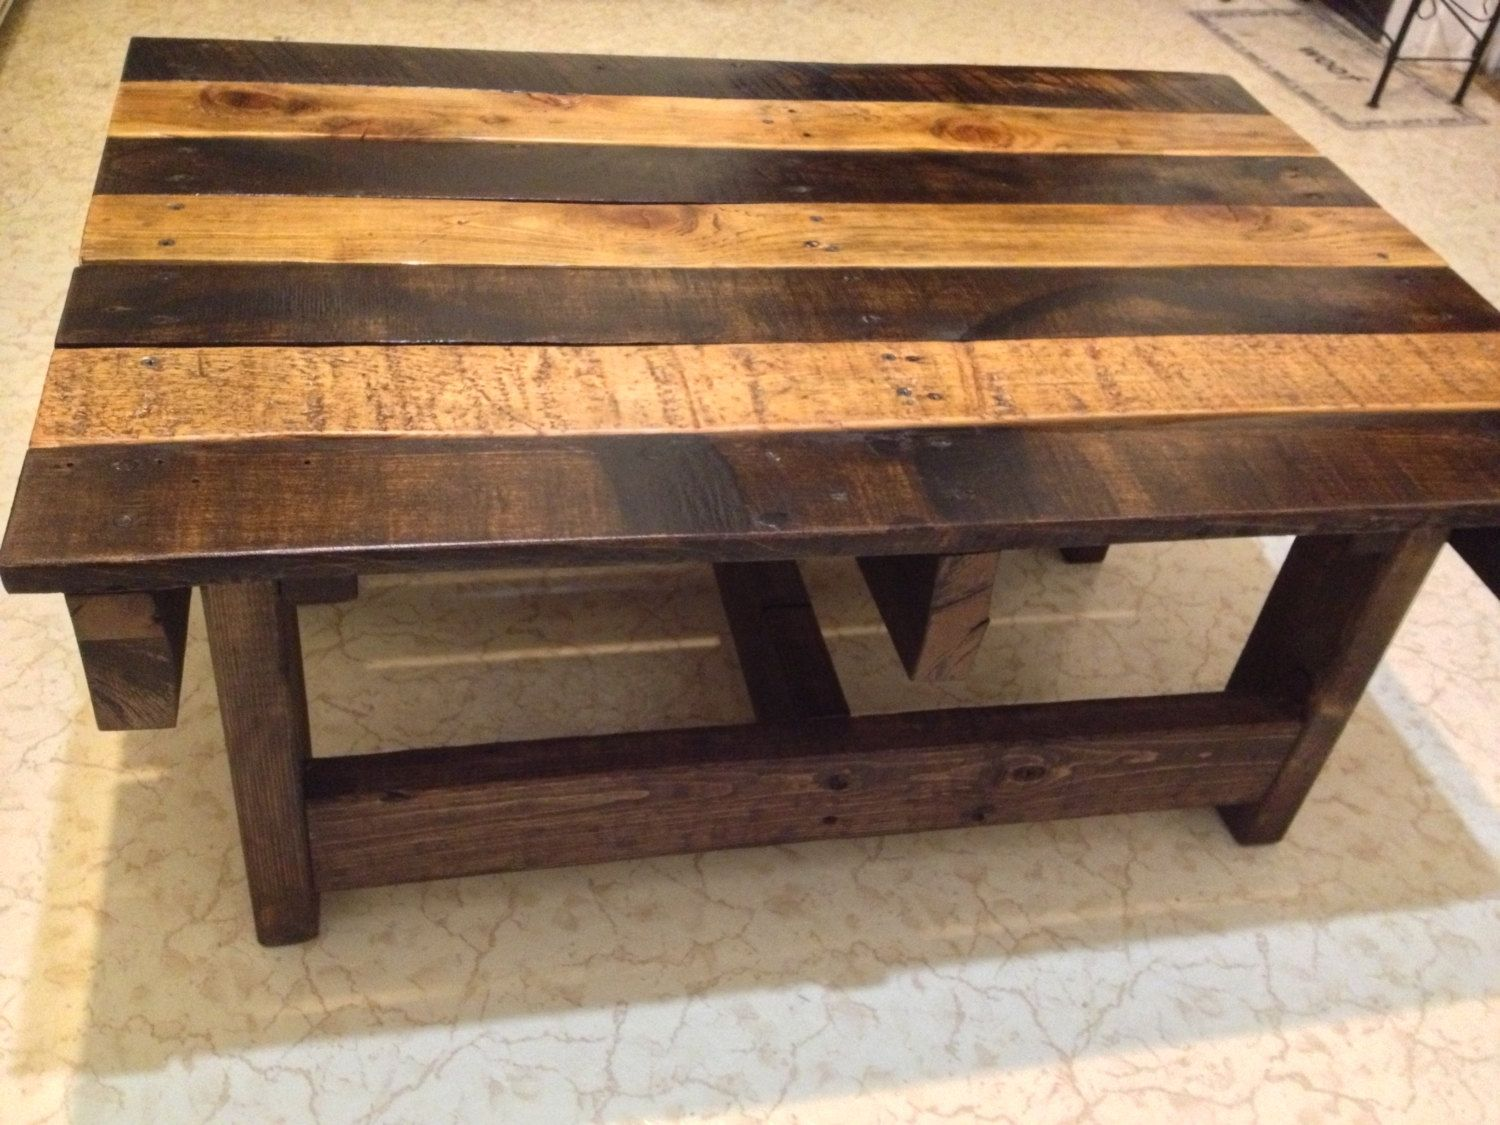 Hand crafted handmade reclaimed rustic pallet wood coffee table by kevin davis woodwork Recycled wood coffee table